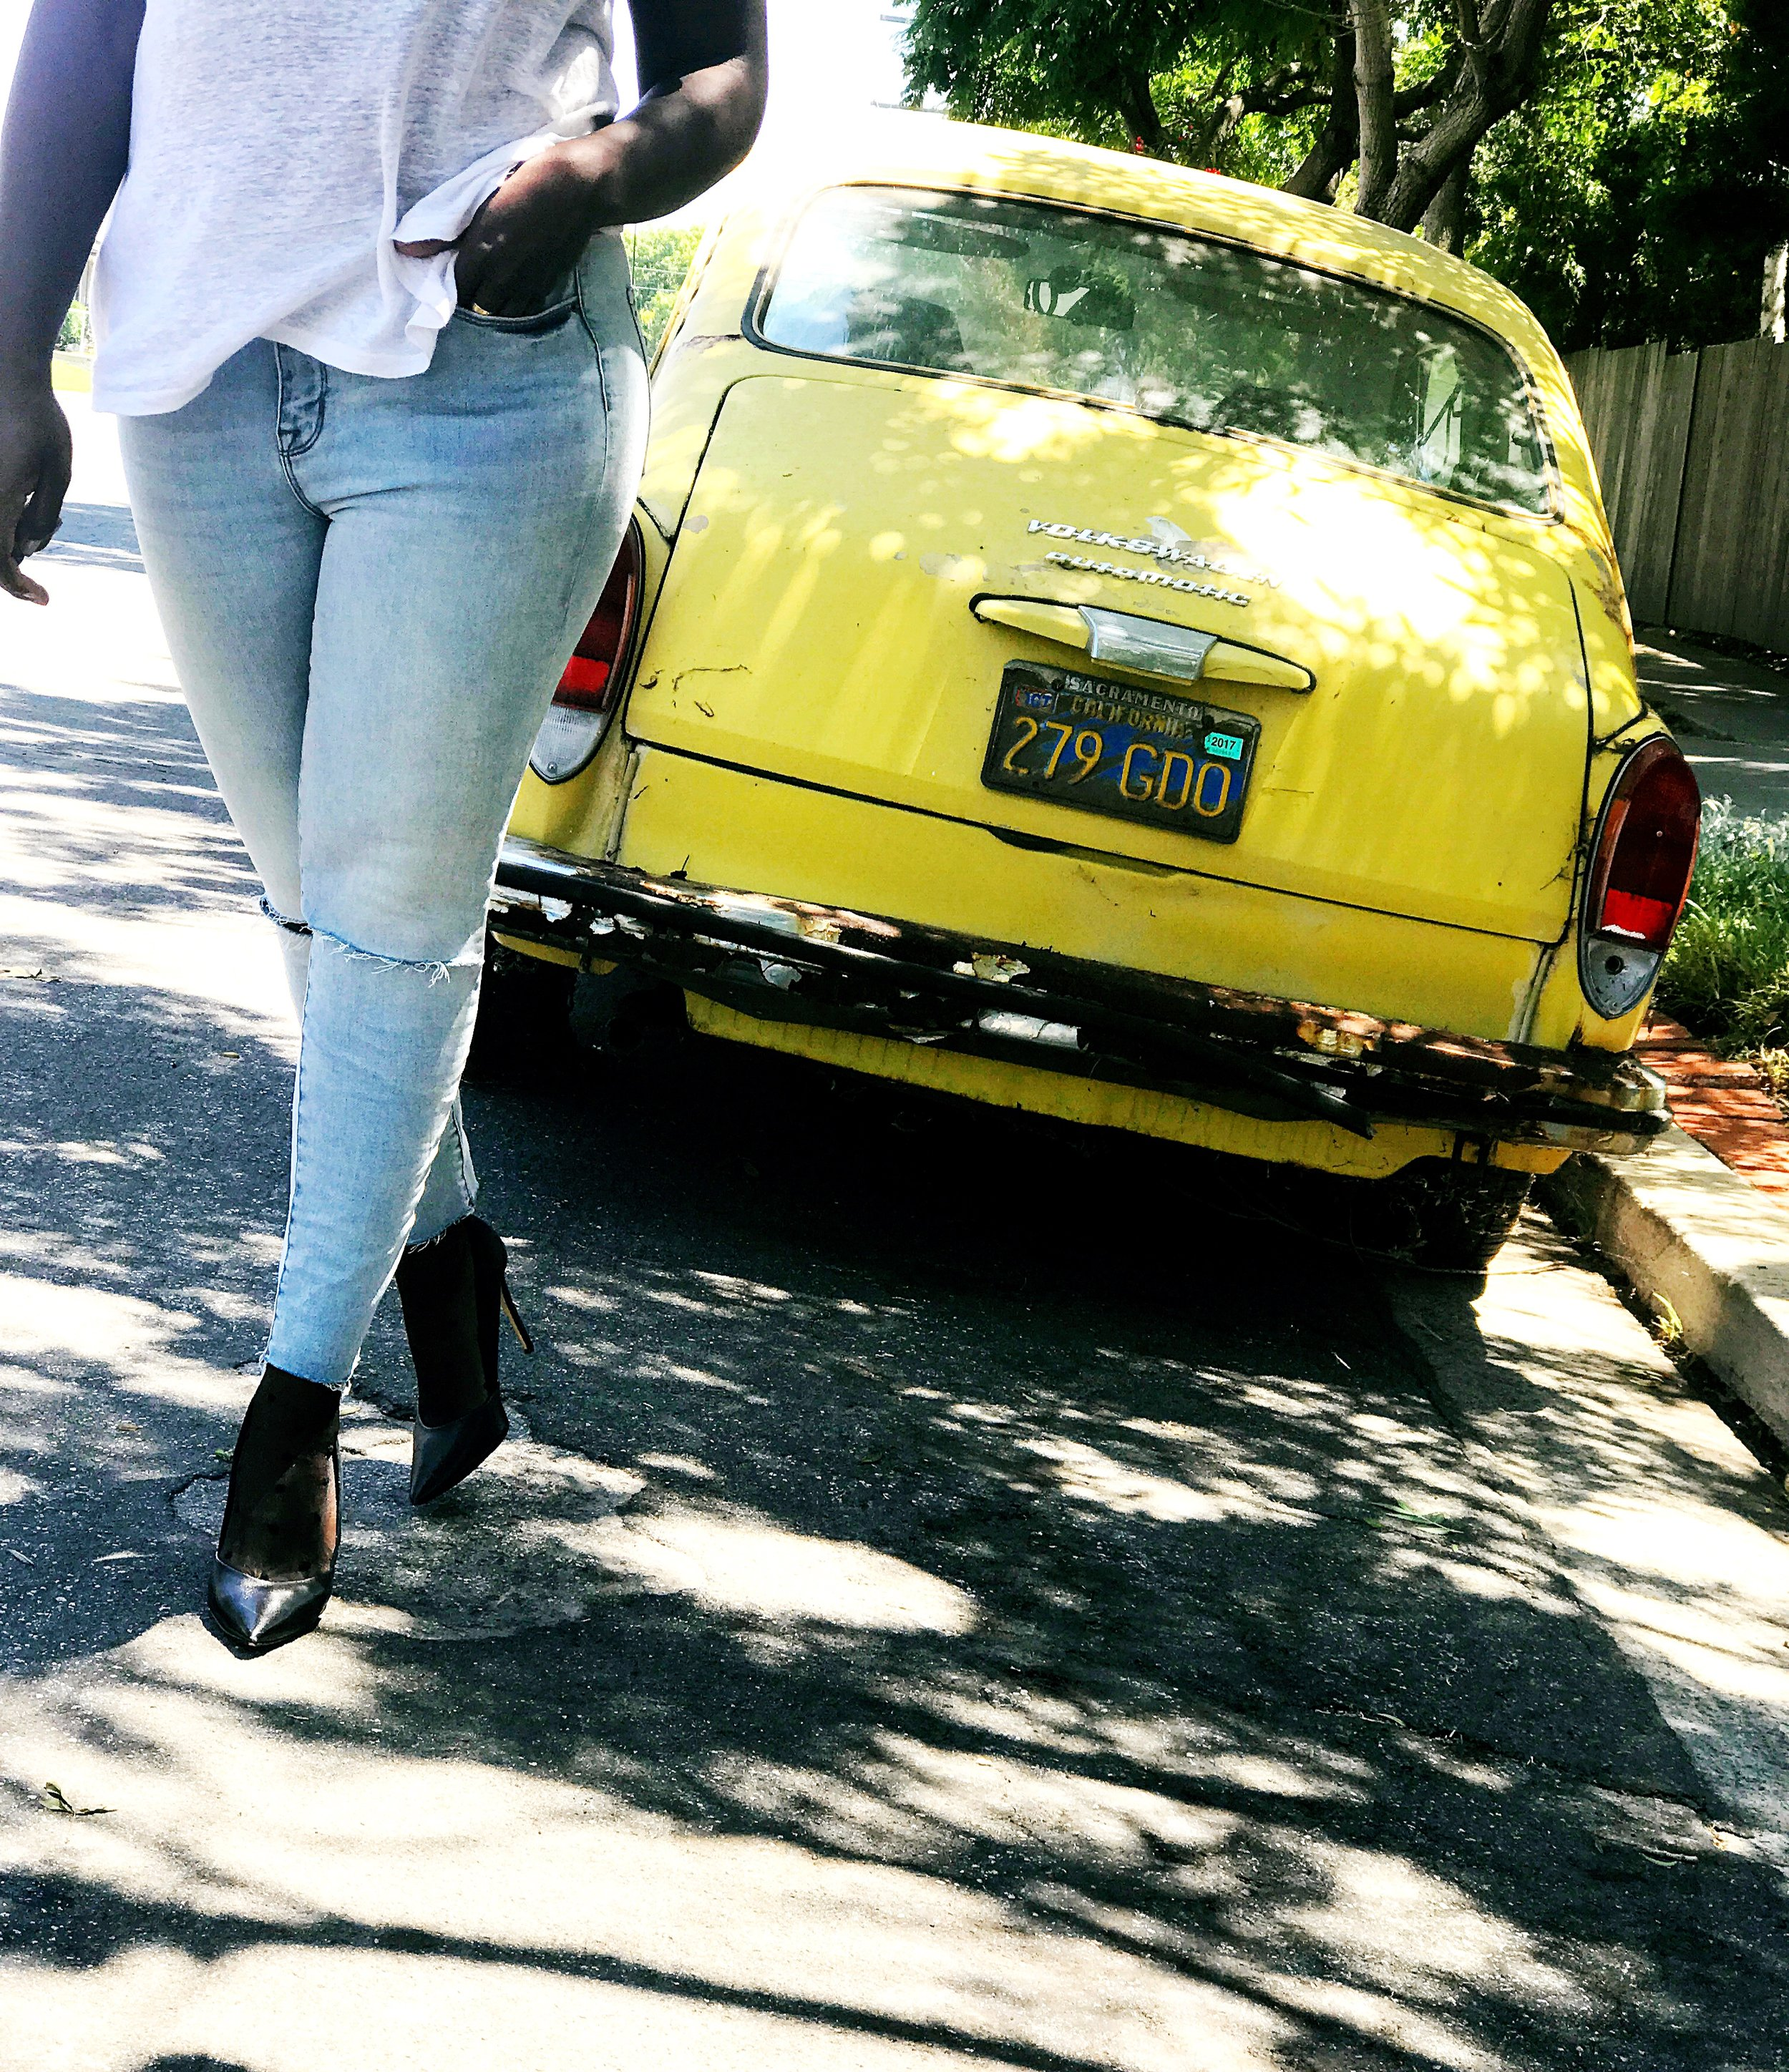 Black woman walking away from old yellow car wearing ripped jeans and t-shirt